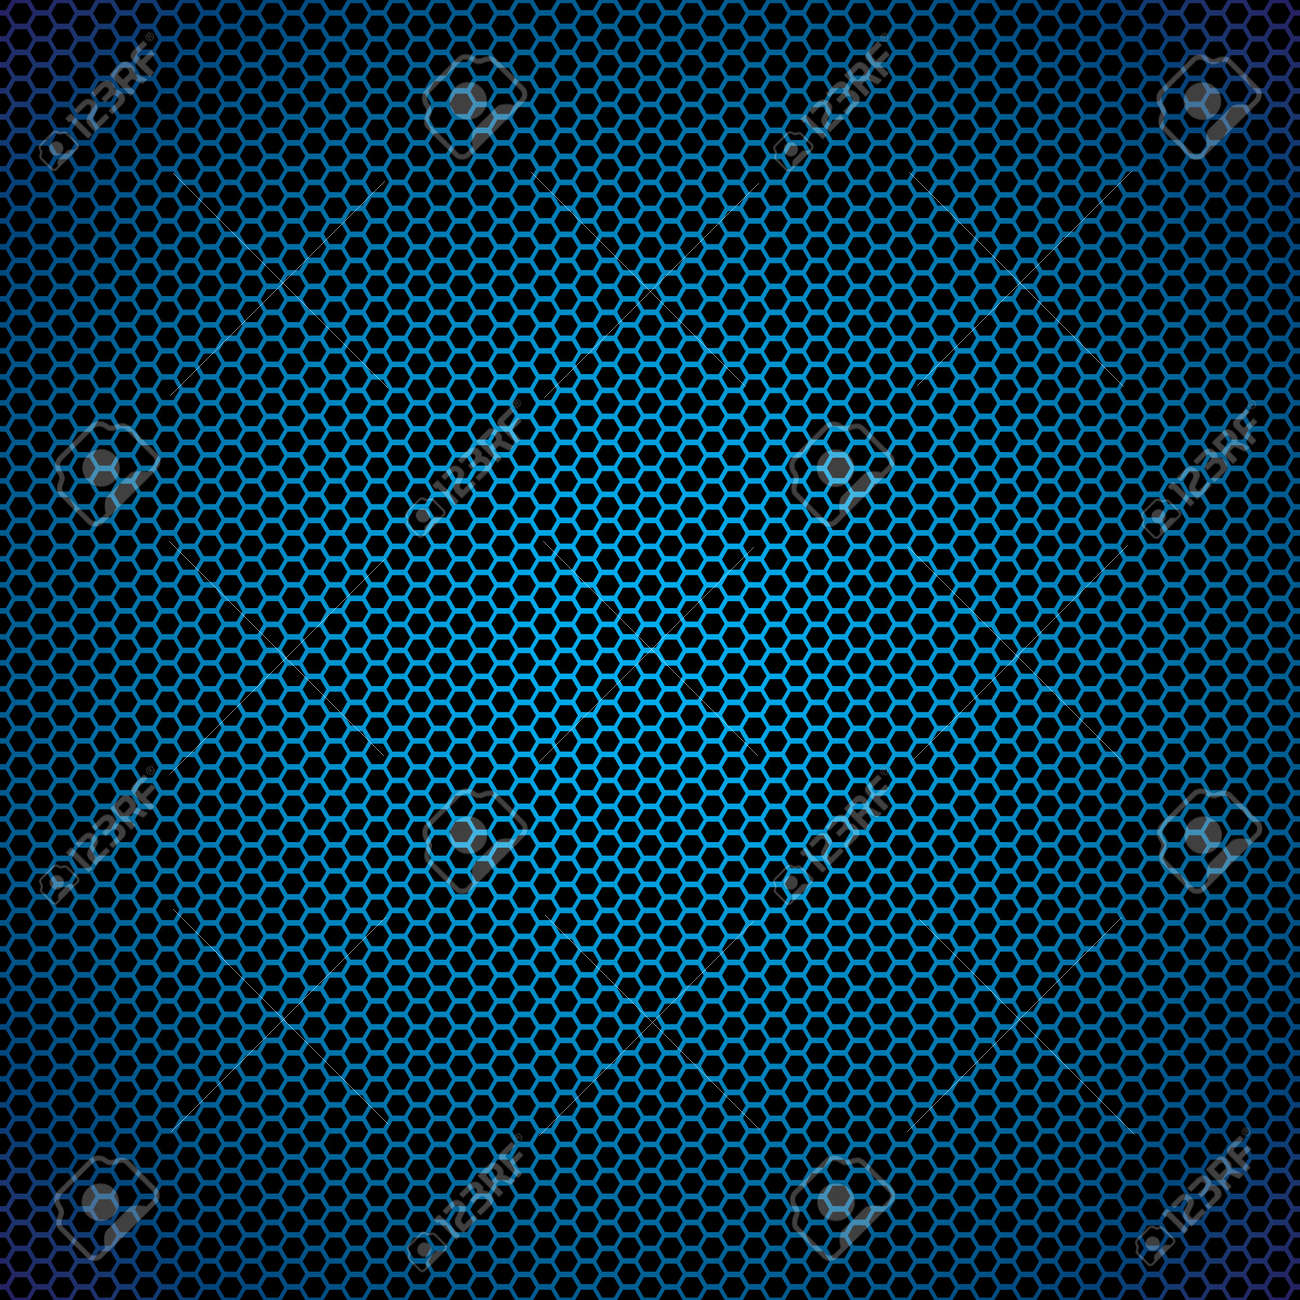 Abstract blue metal hexagon background with honeycomb effect - 7635410